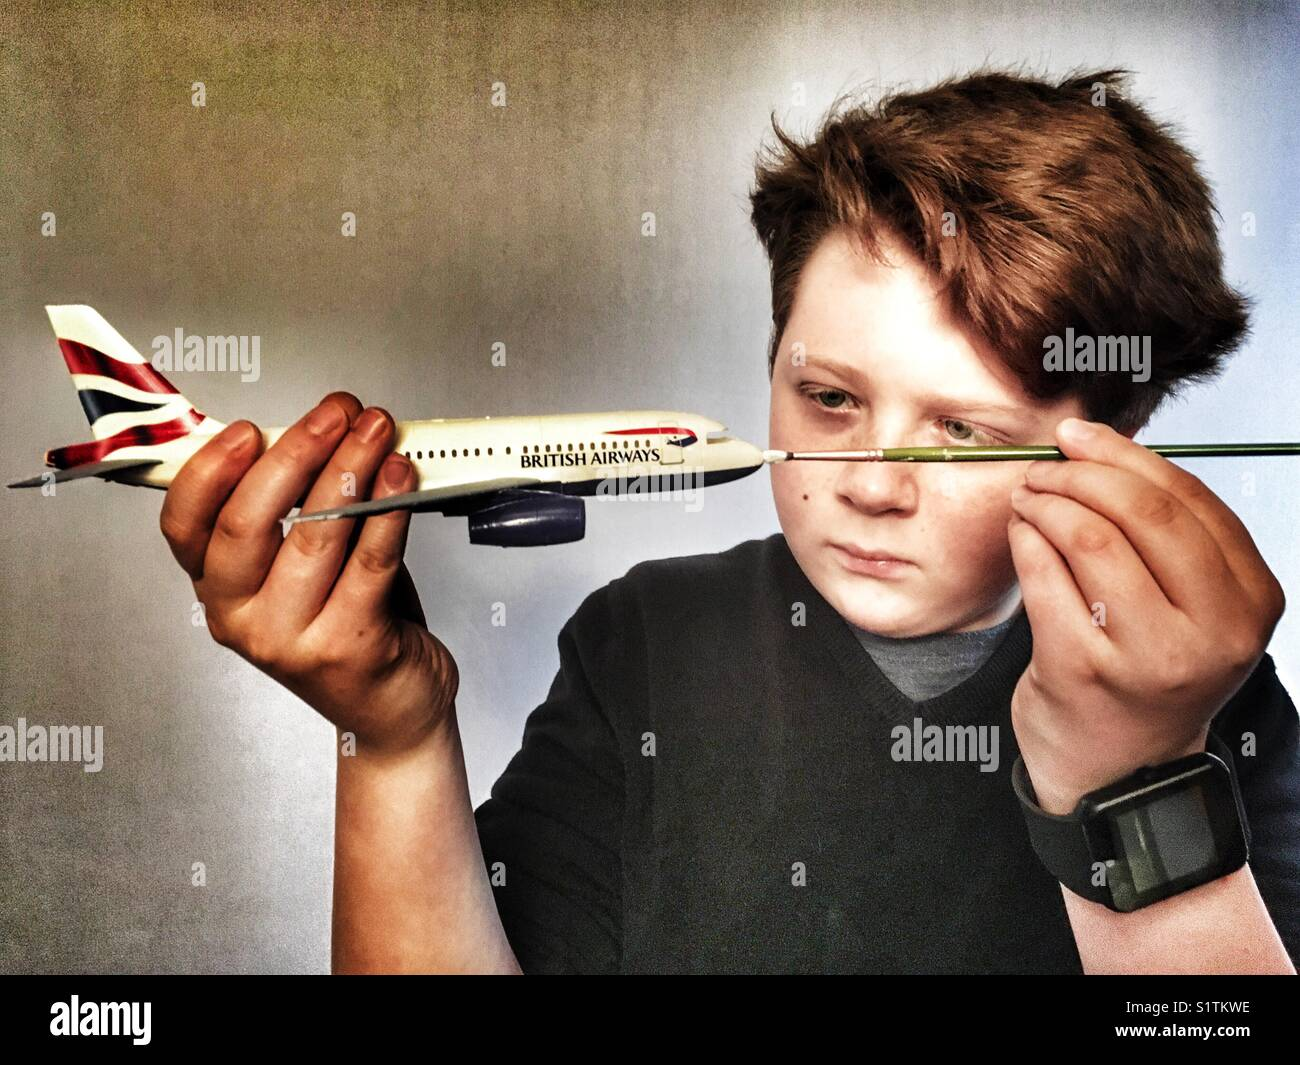 Revell Airbus A319 model aircraft - Stock Image